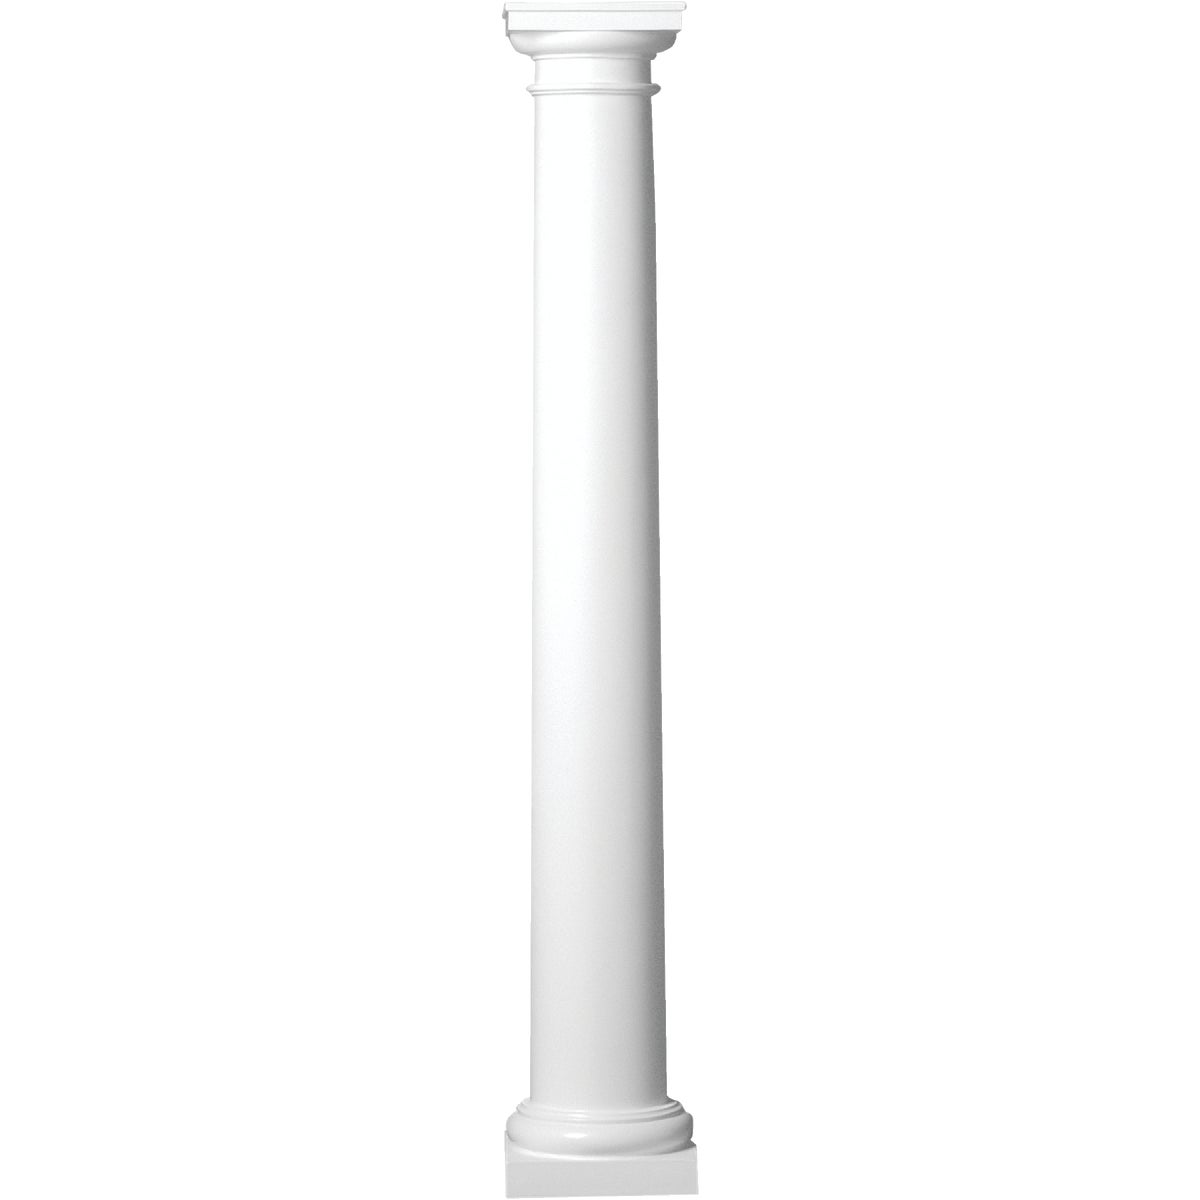 "10""X8' COLUMN RND F/G - 70011008PL by DIXIE PACIFIC"